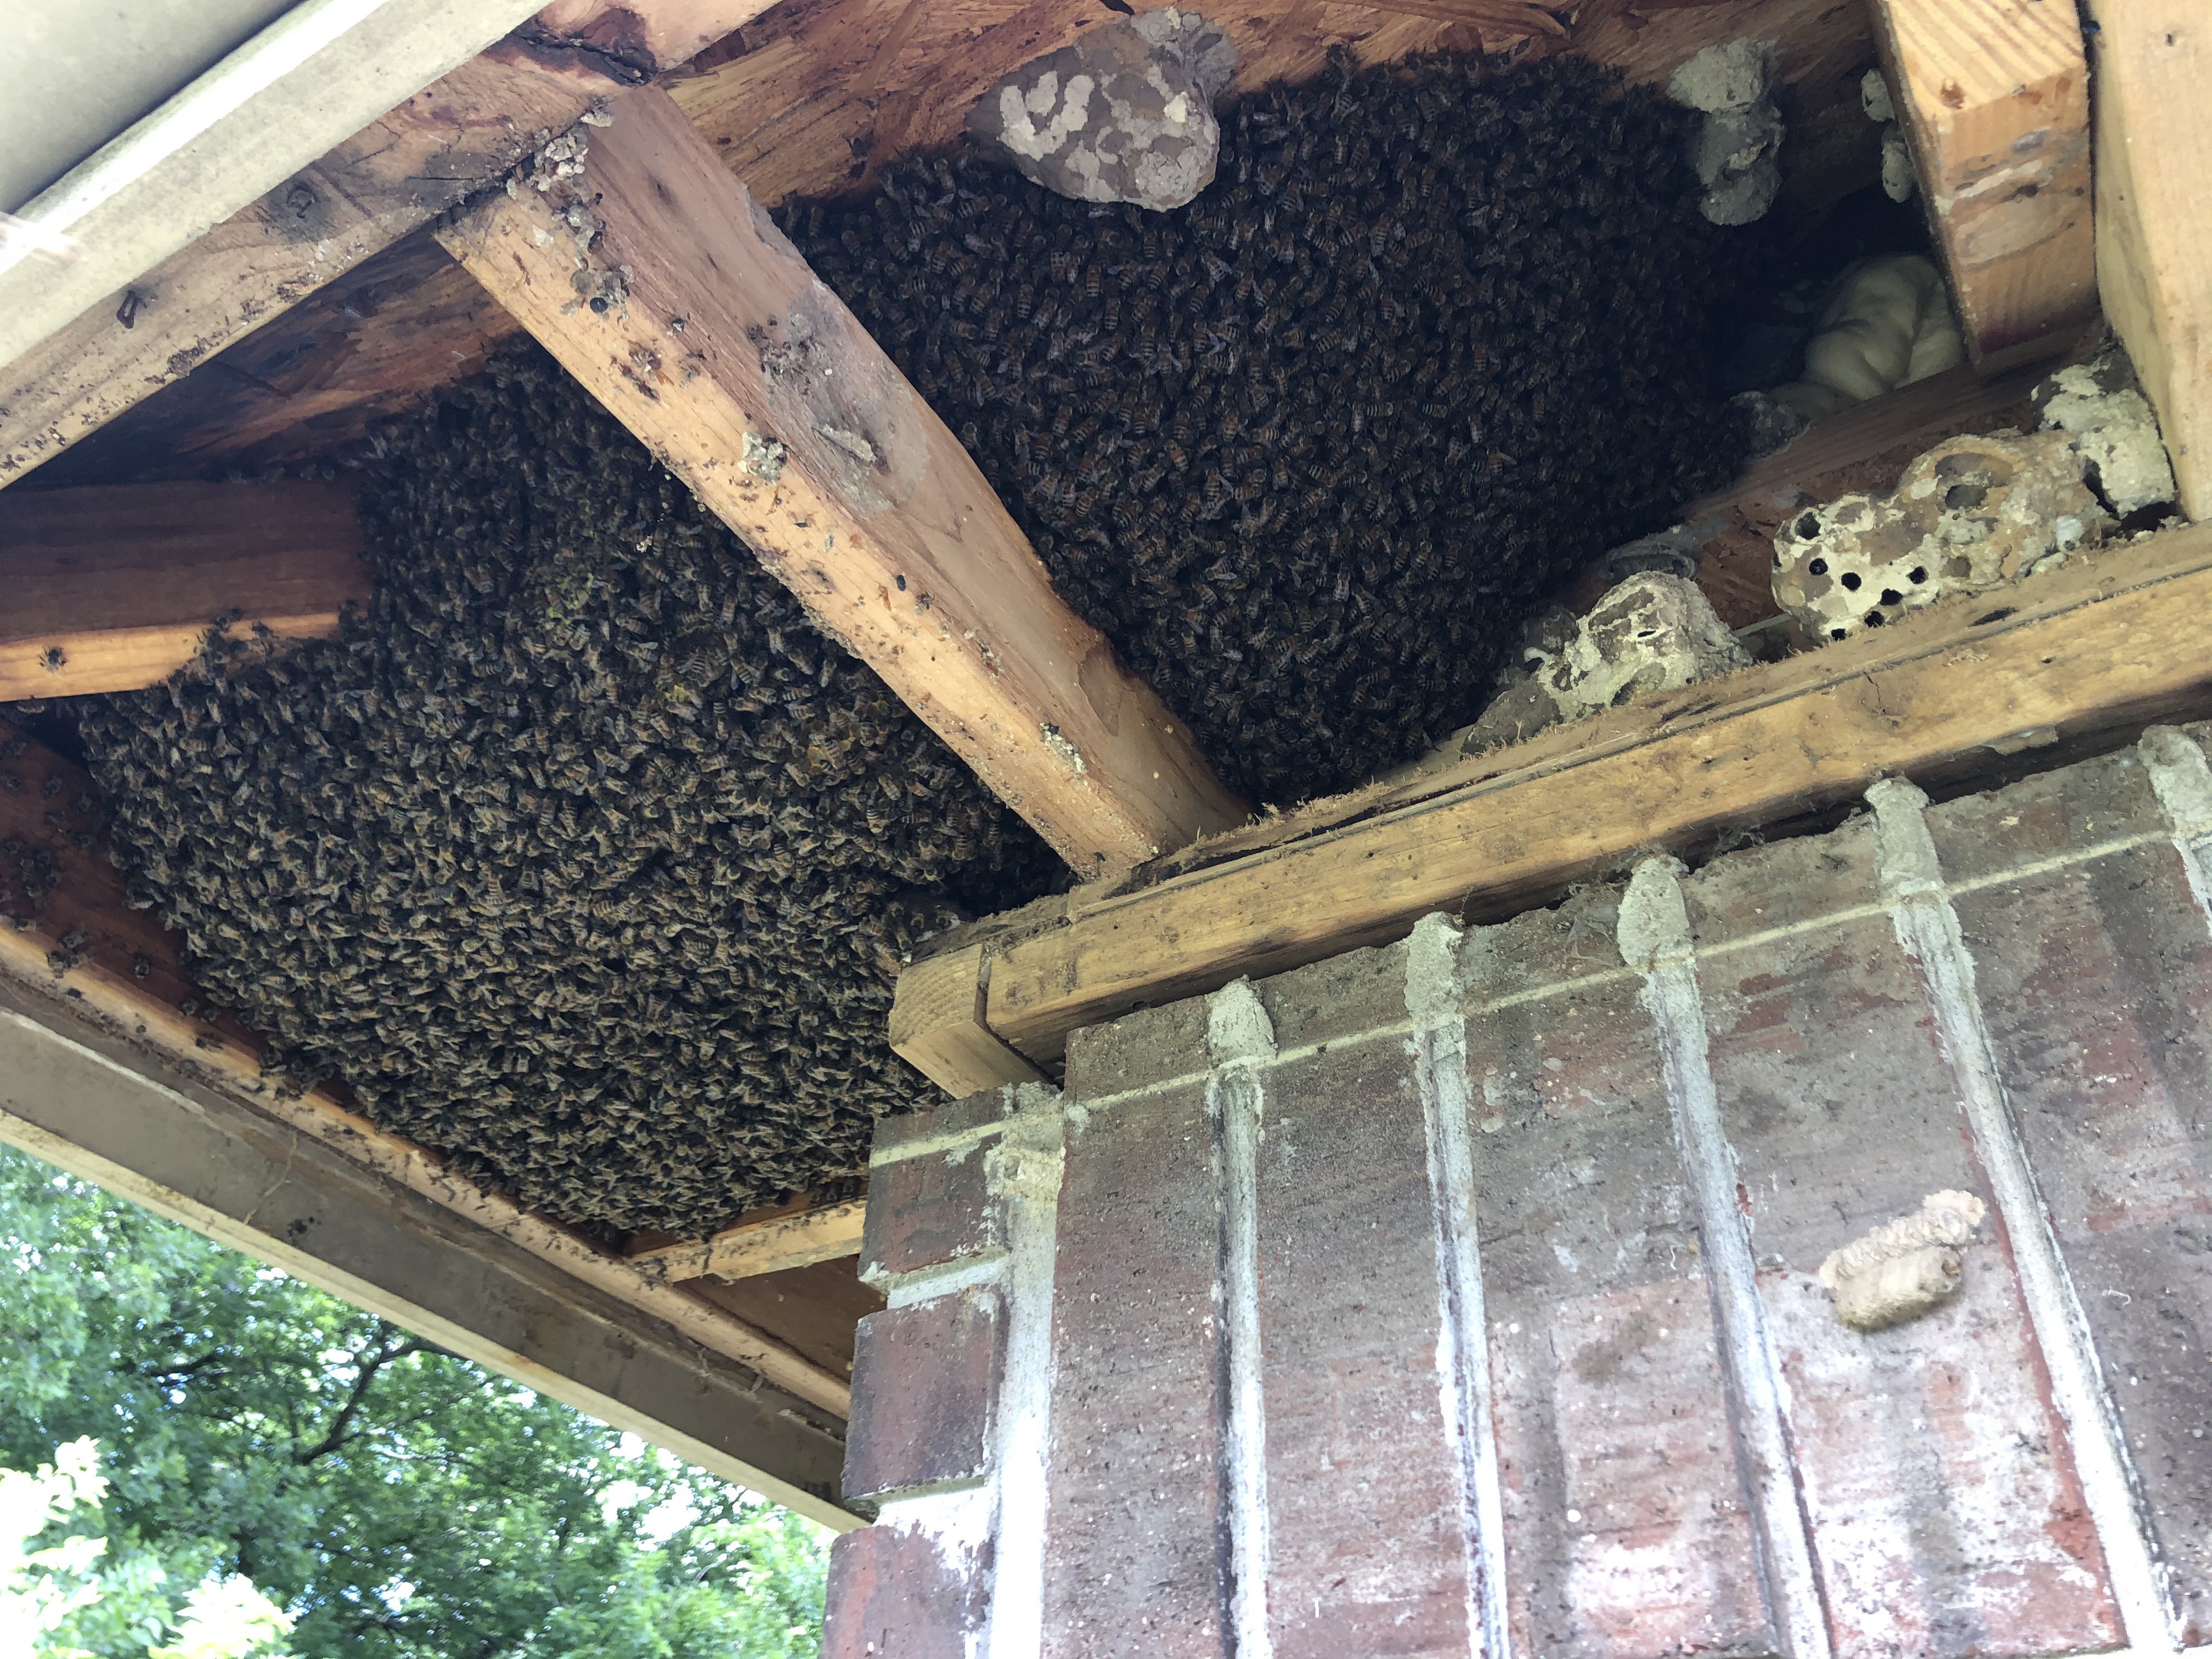 large bee hive in the soffit of a residential home